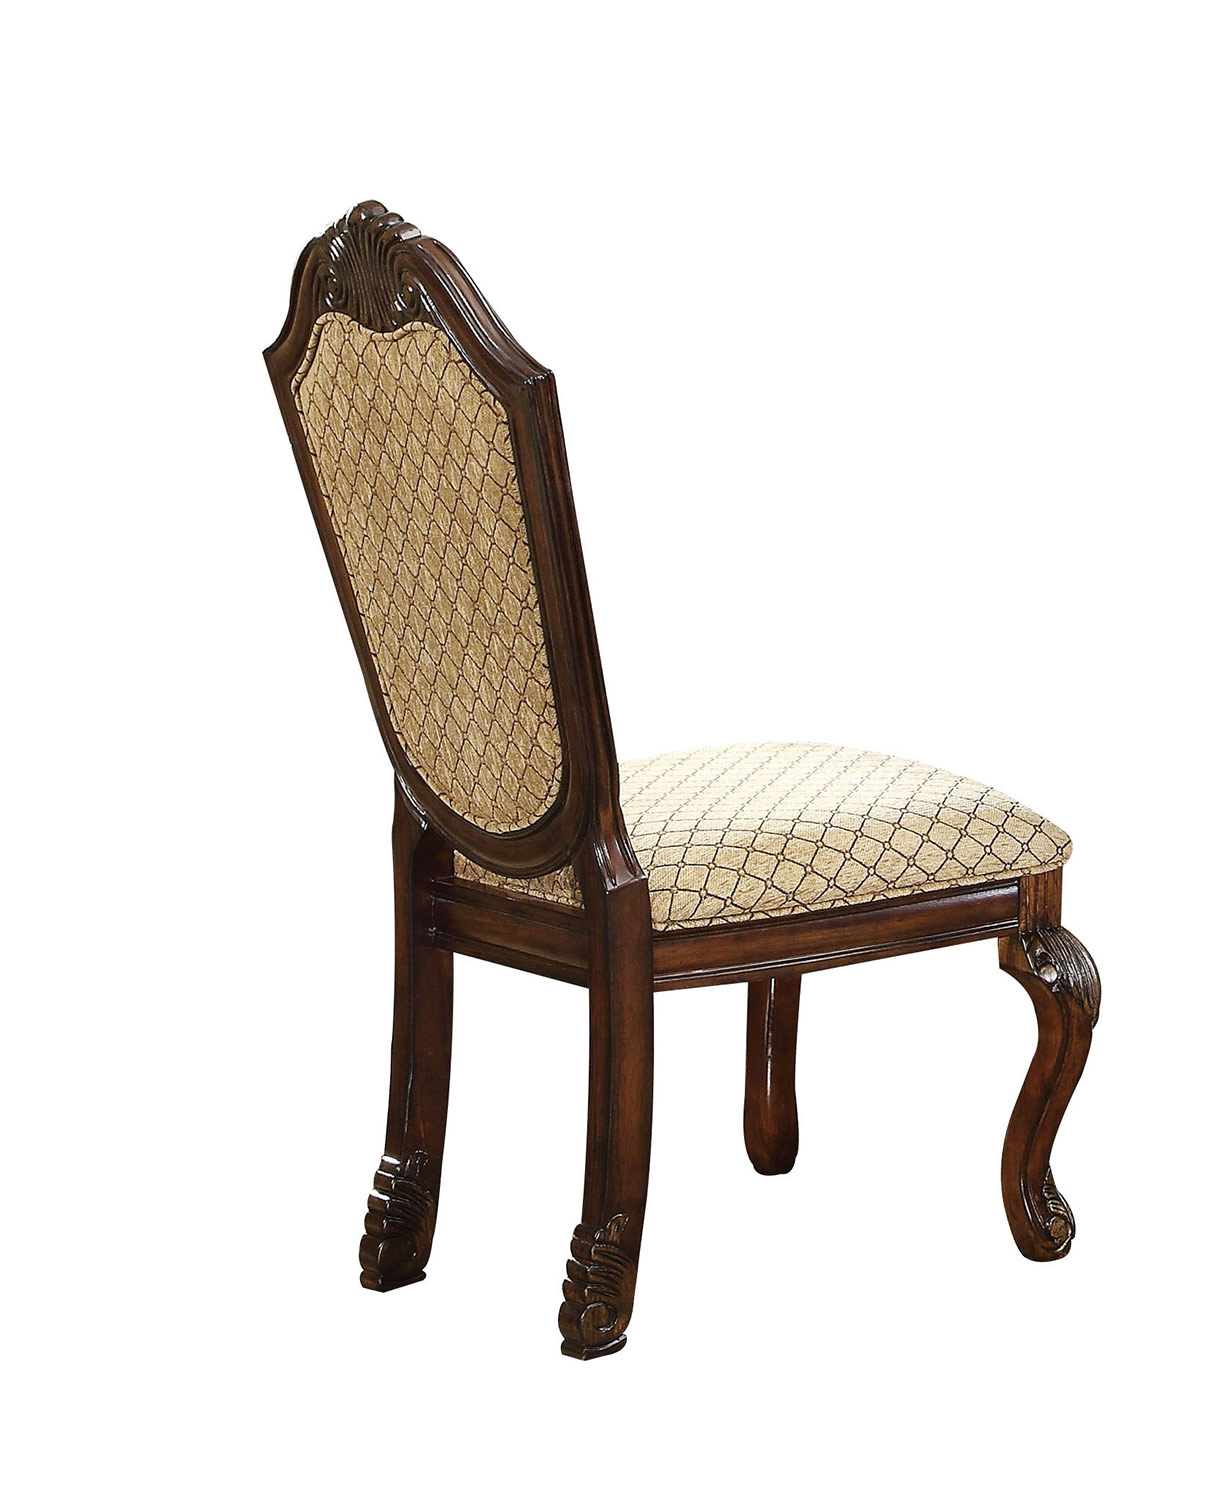 Acme Chateau De Ville Side Chair - Fabric/Espresso